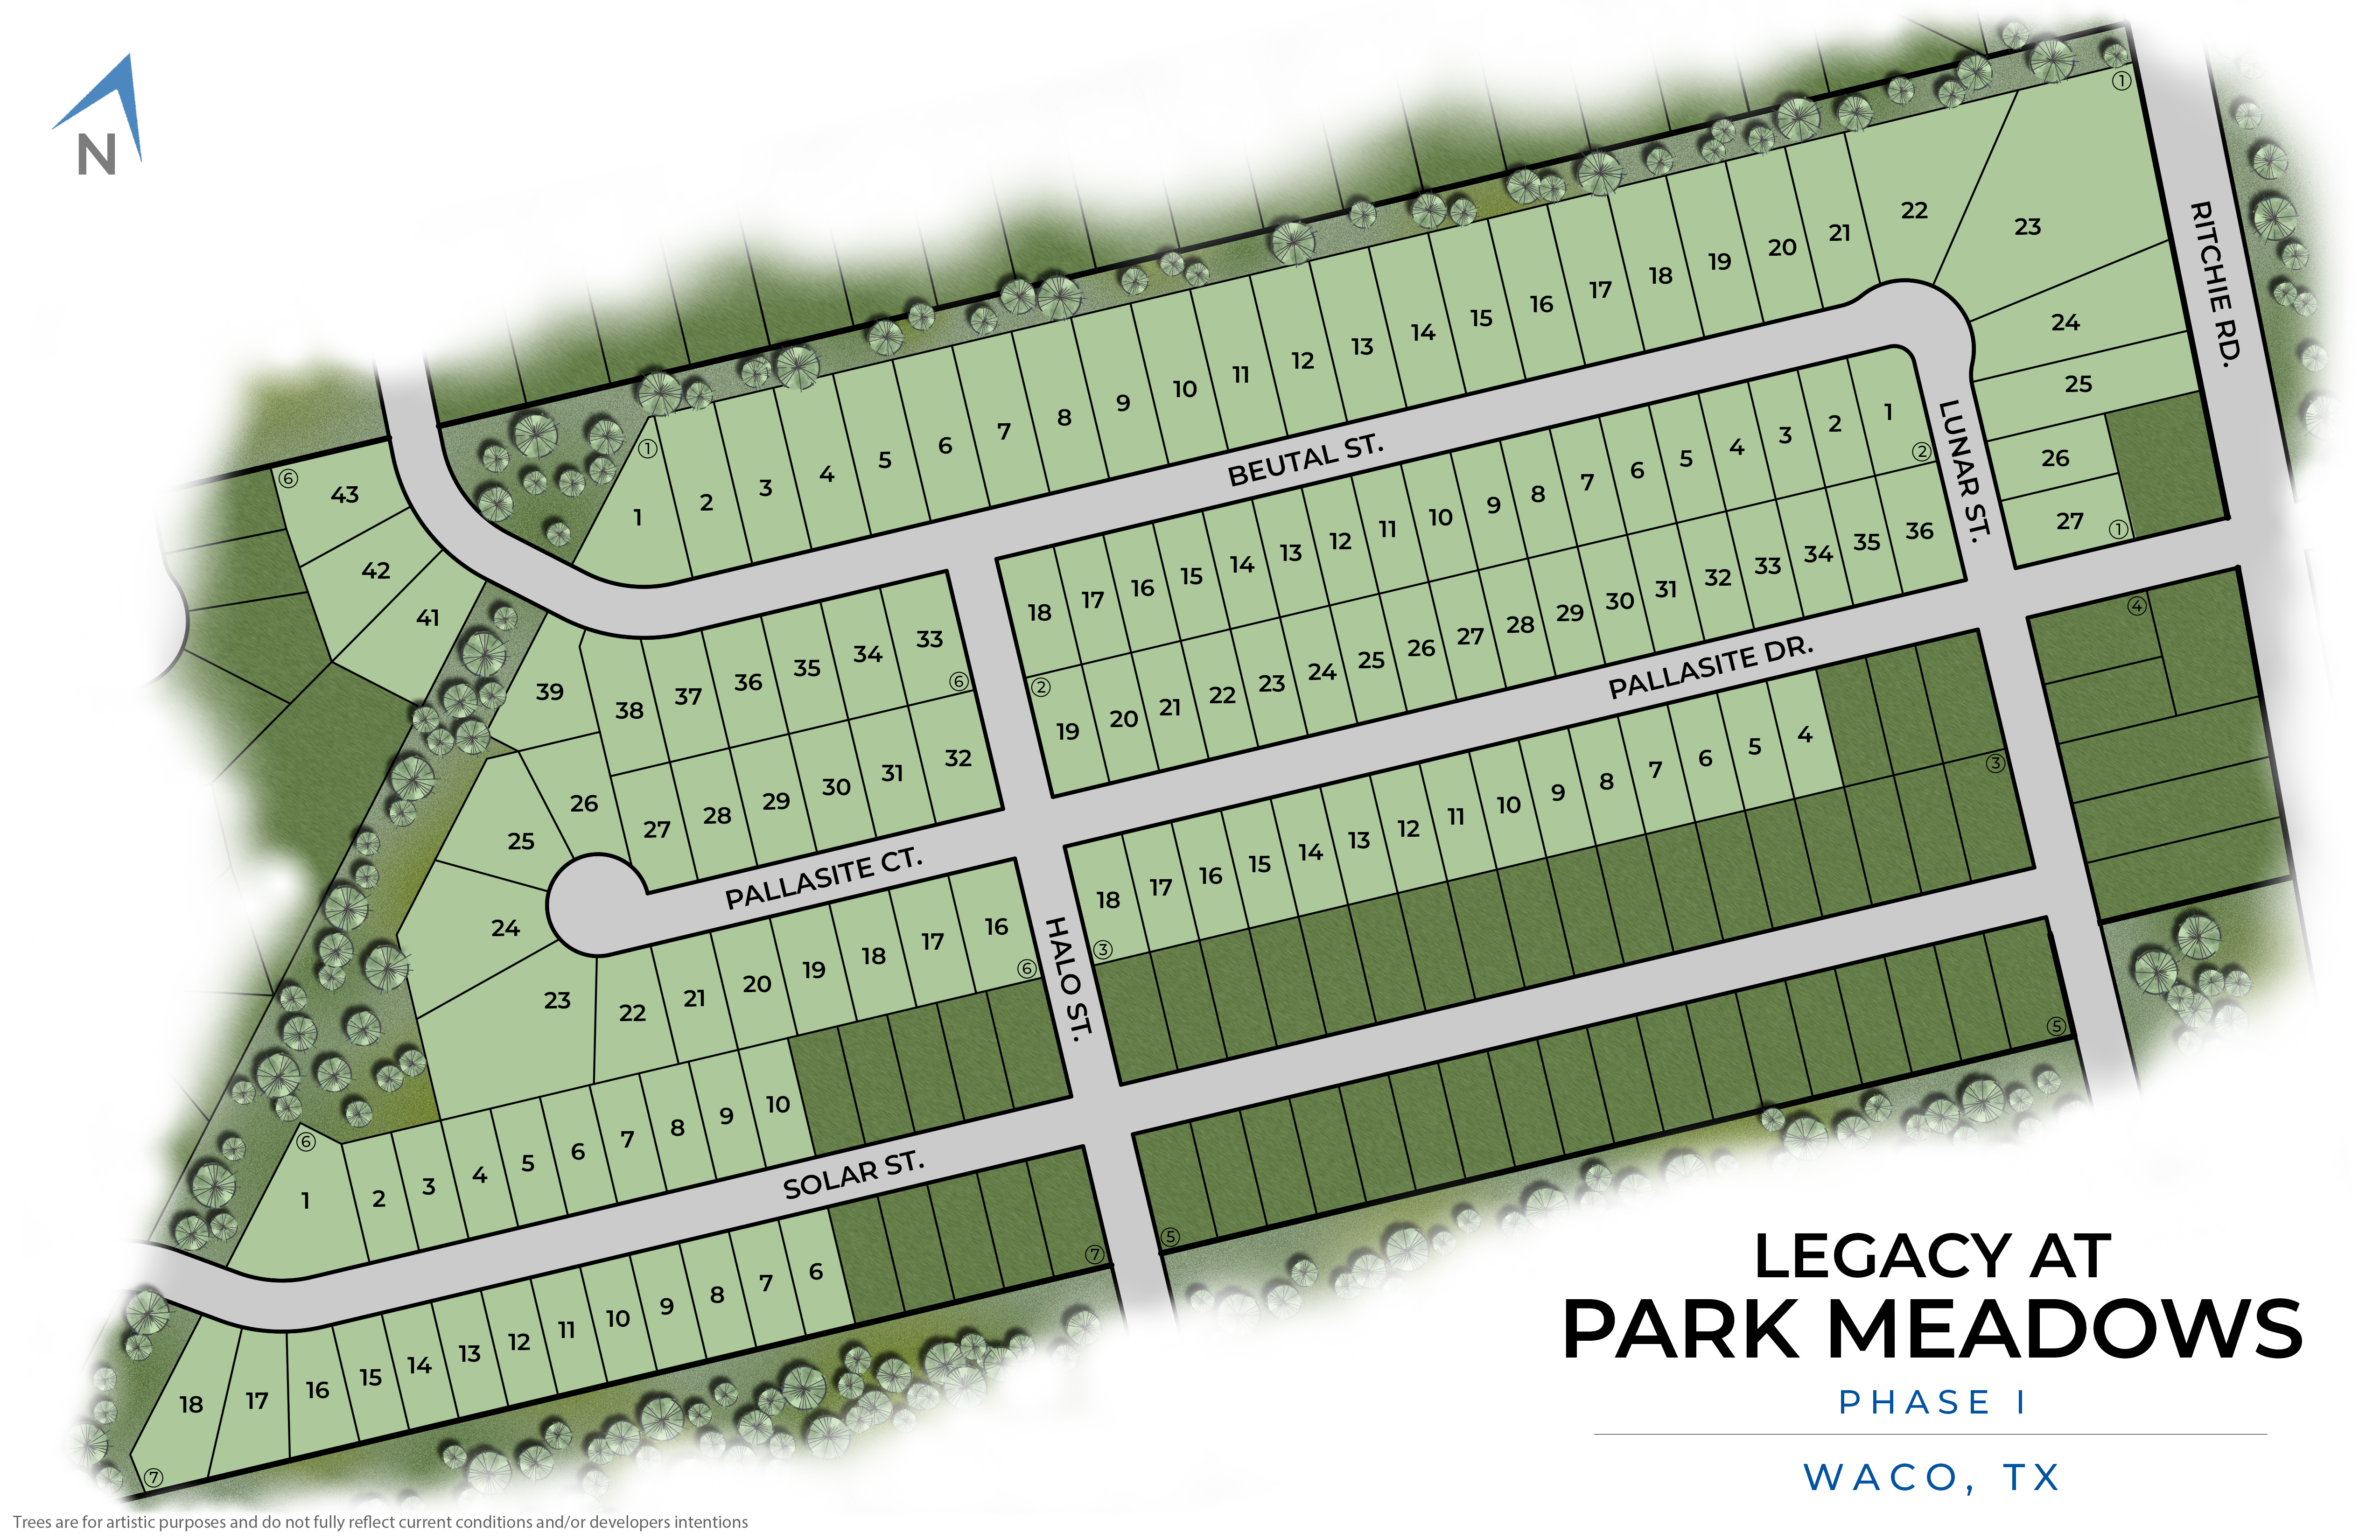 Waco, TX Legacy at Park Meadows New Homes from Stylecraft Builders